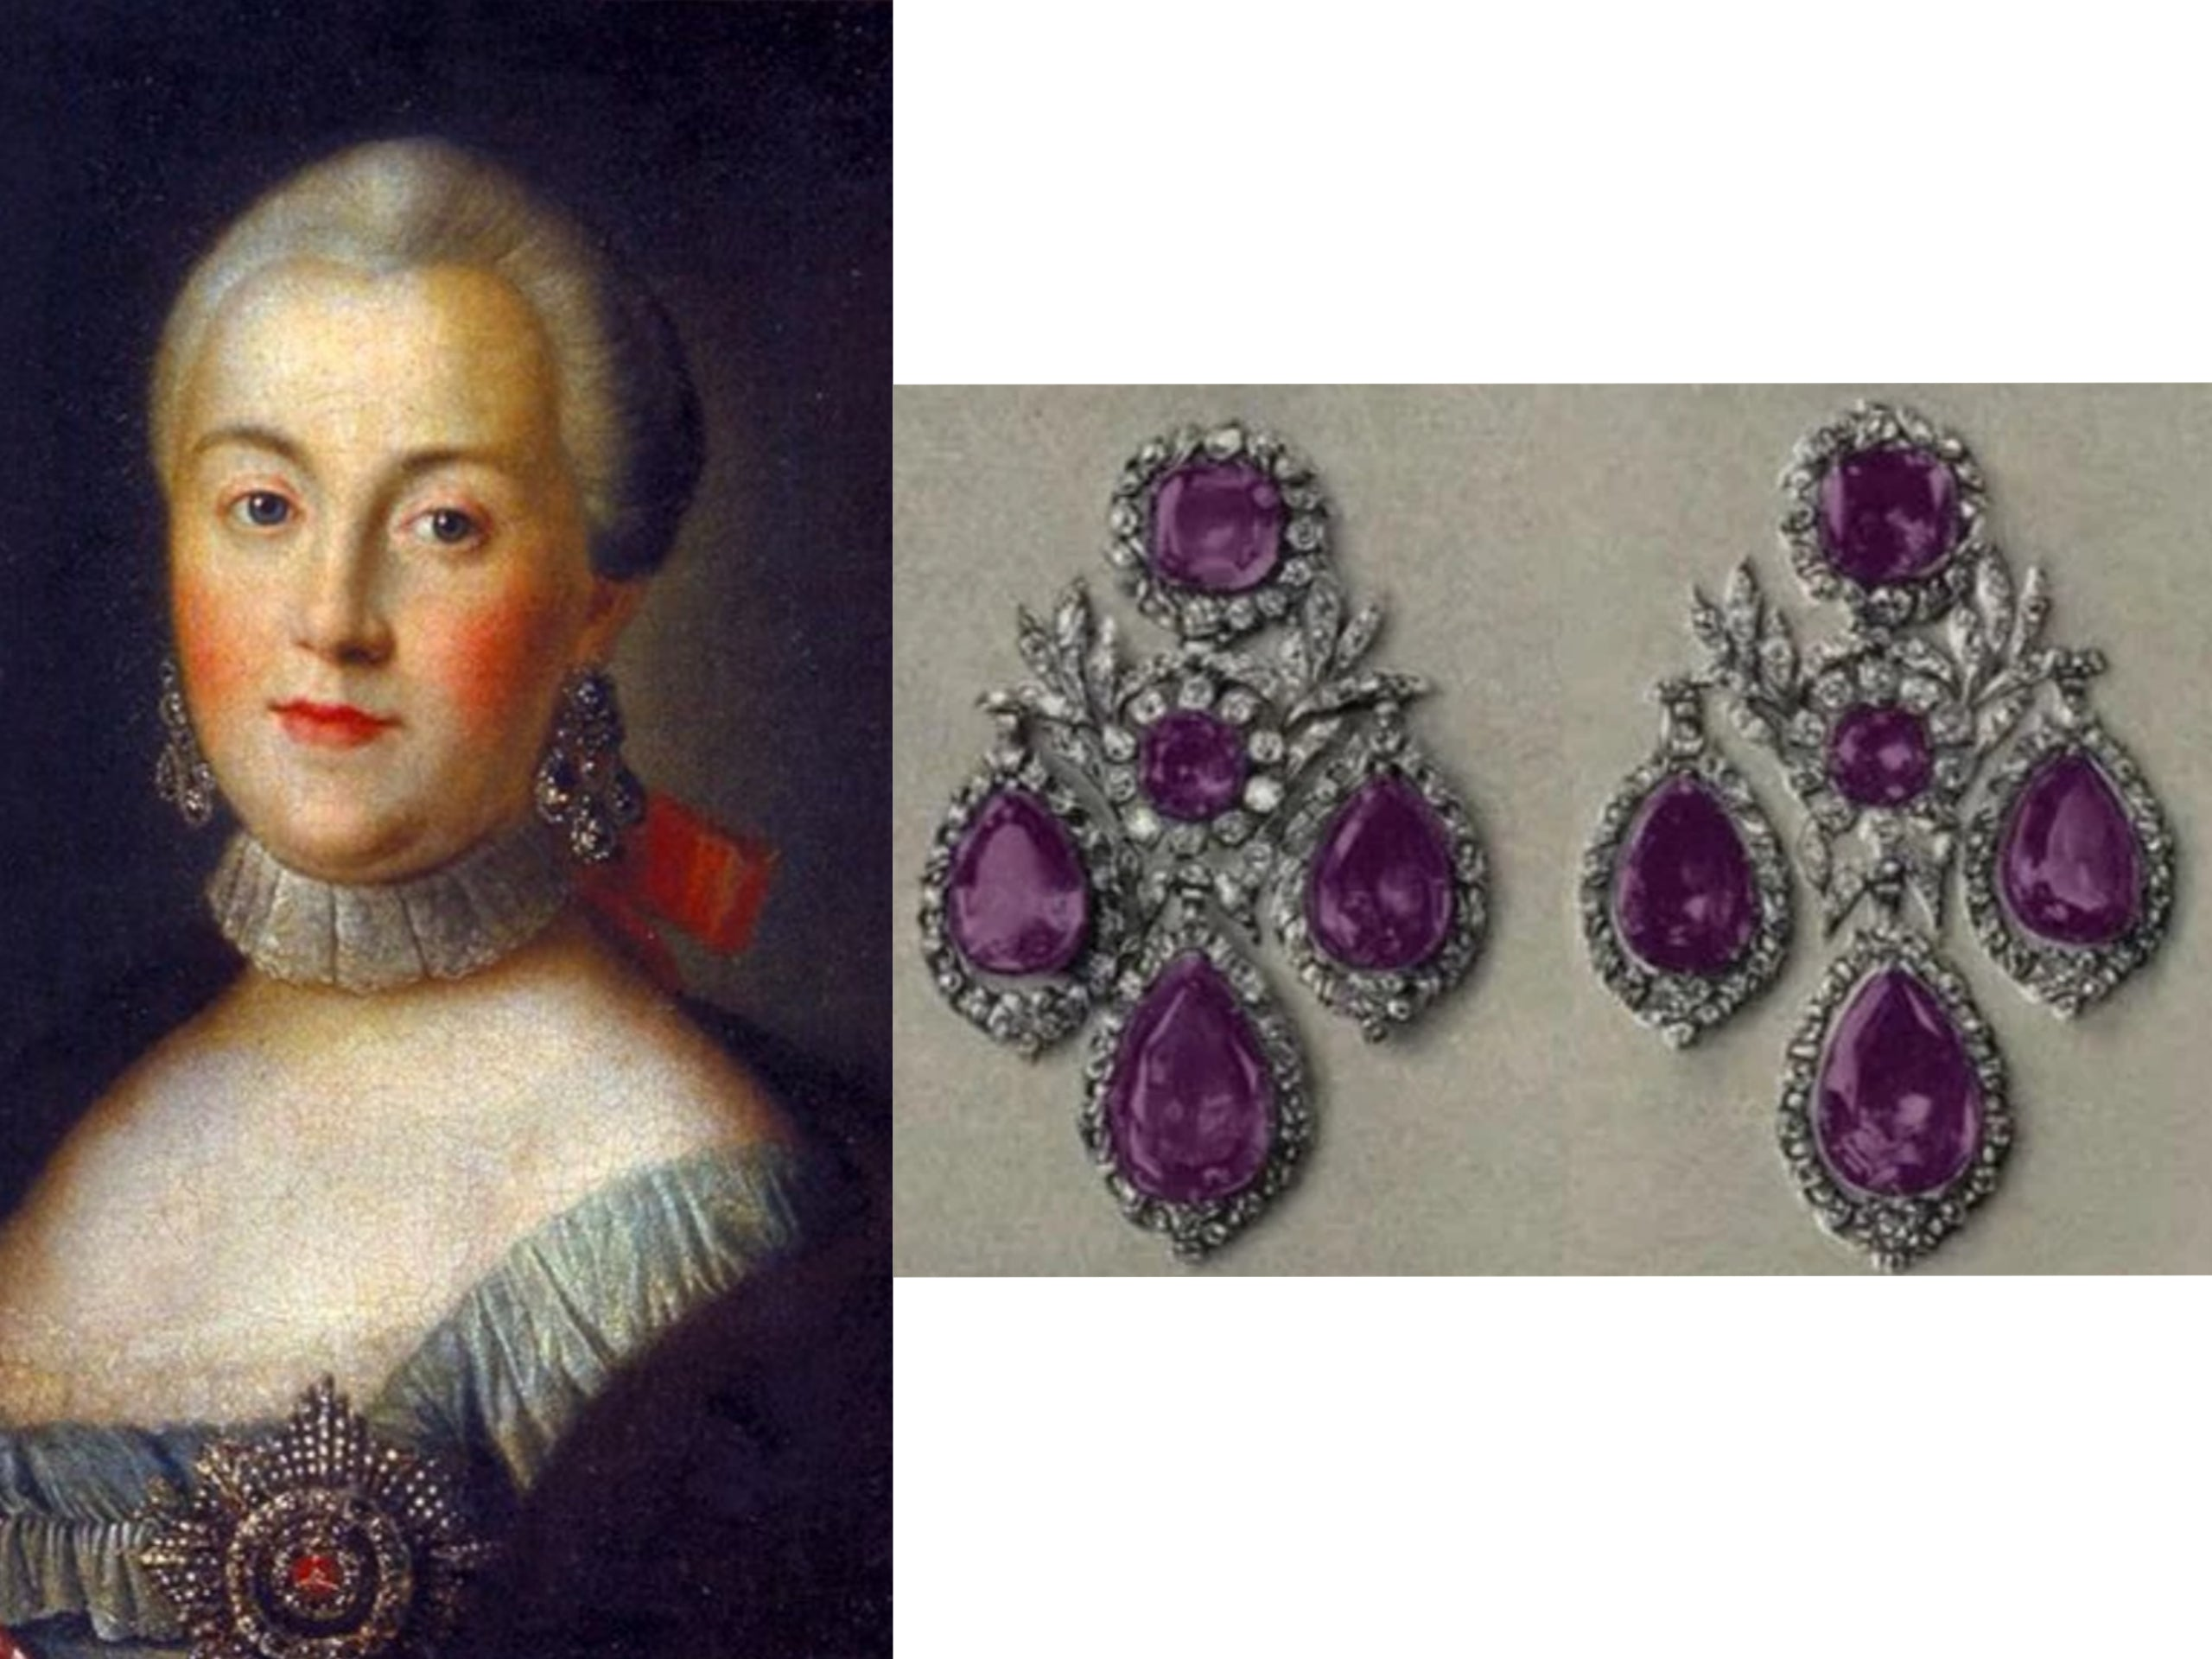 Catherine the Great wearing her famous amethyst earrings